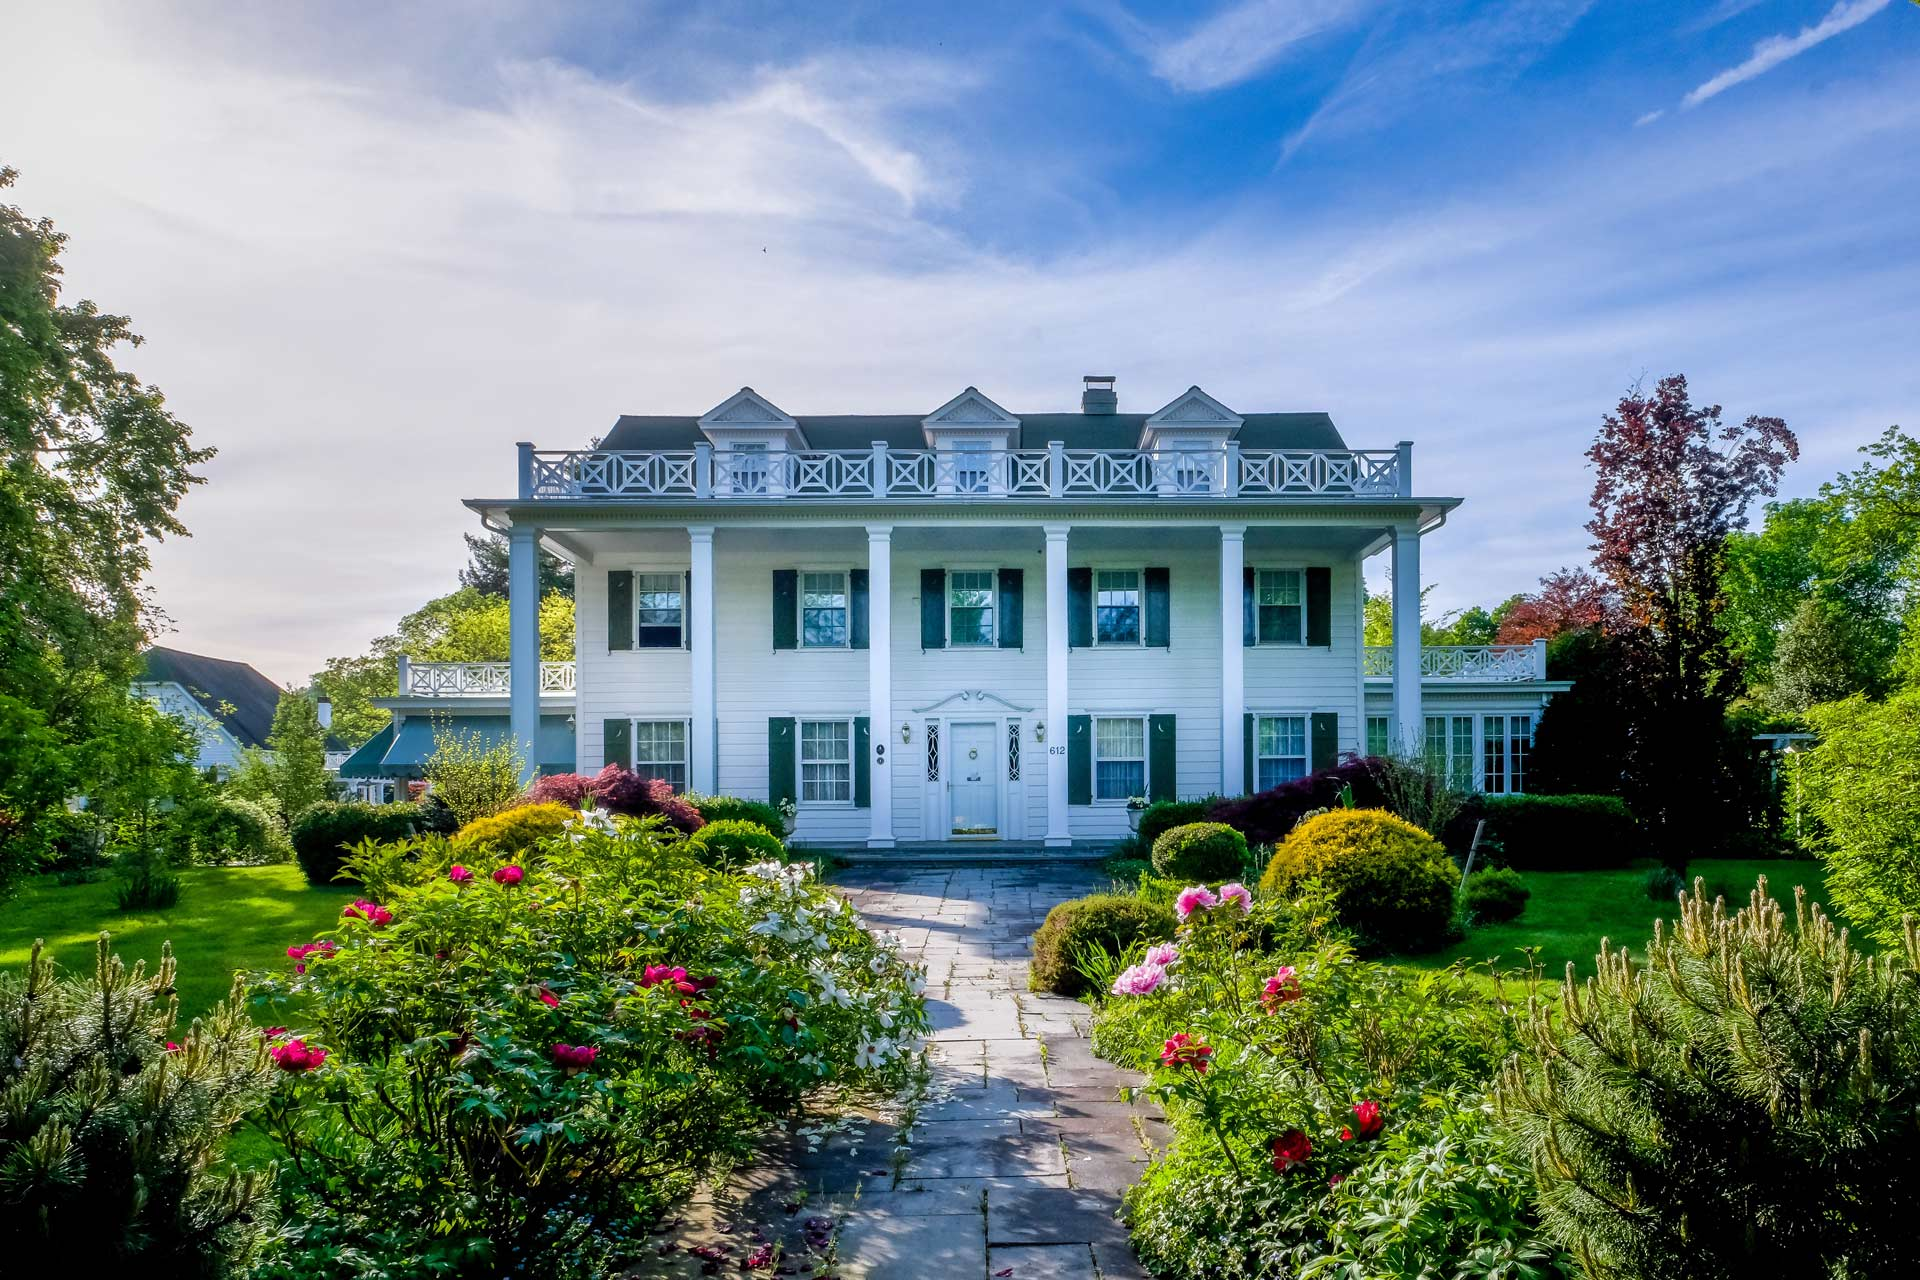 large 3 story white house with columns and large walkway with landscaping